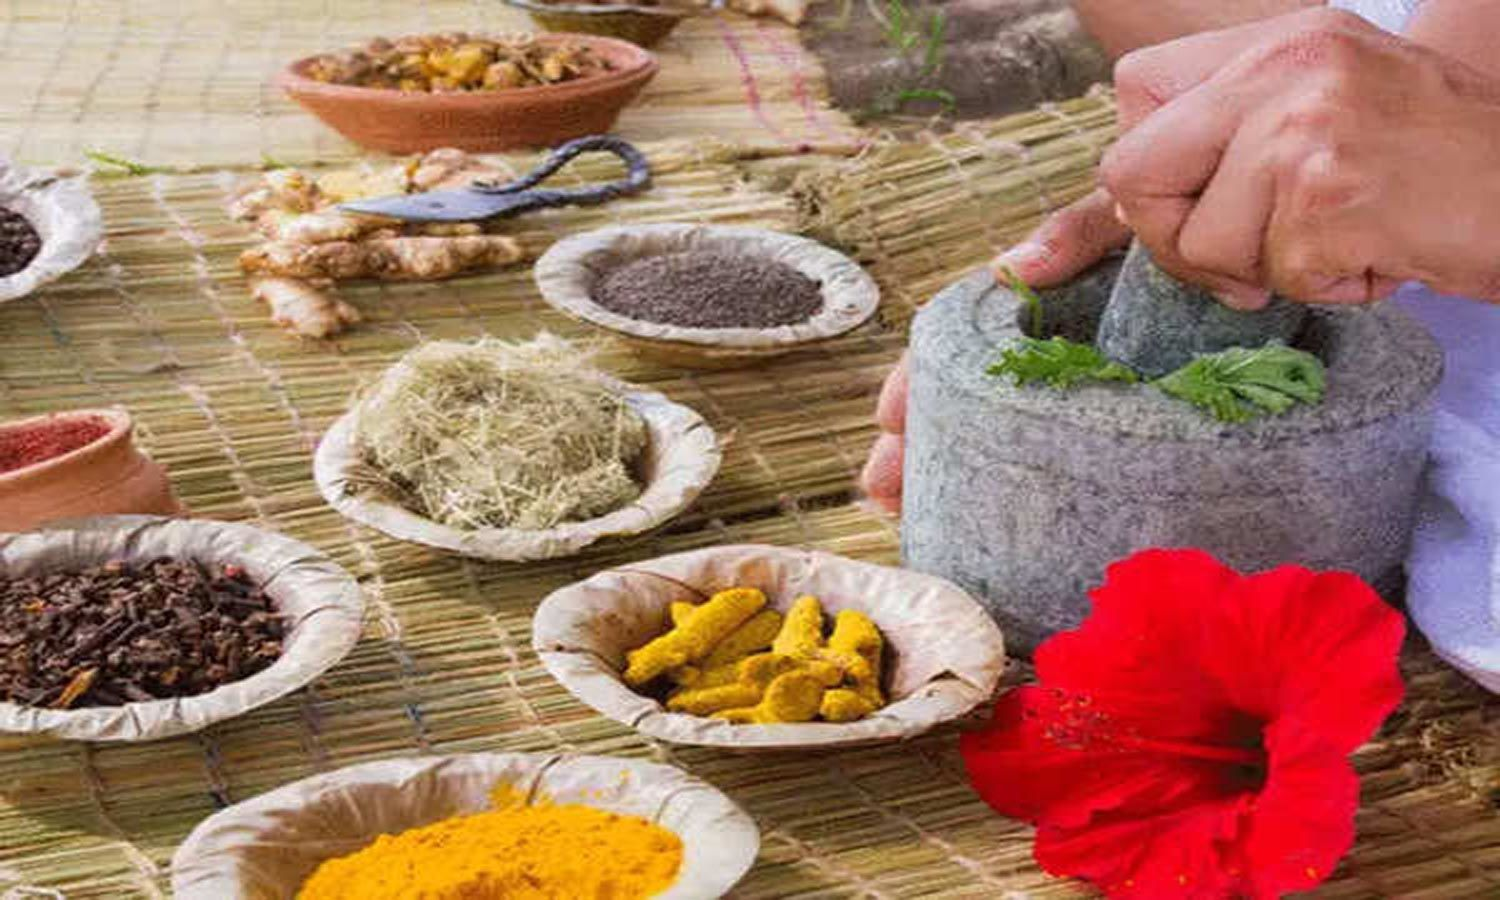 AYUSH Ministry approves clinical trials of Ayurvedic Rasayanas to fight Covid-19